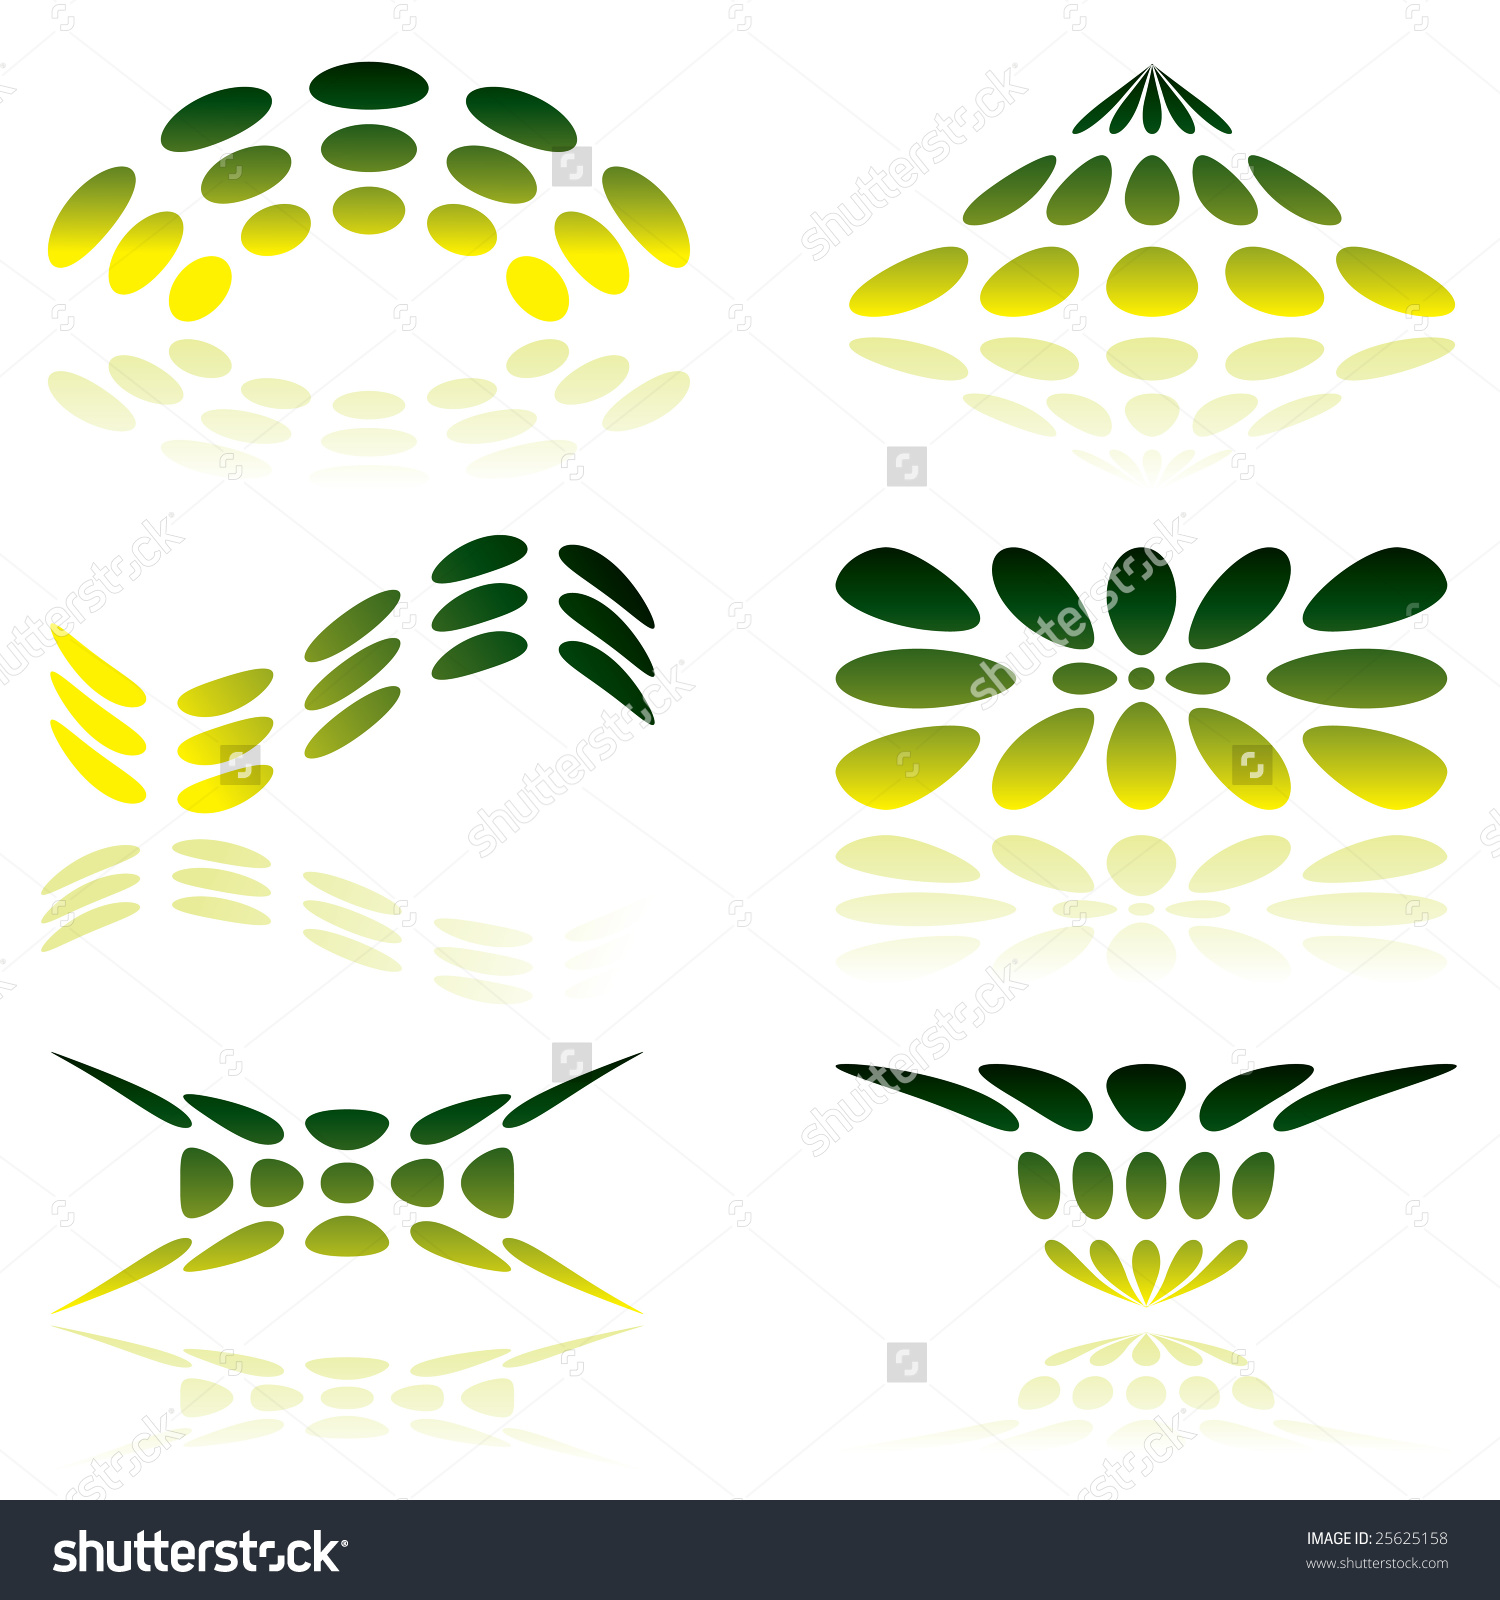 Shades Of Green Illustrated Logo With Reflected Shadow Stock.